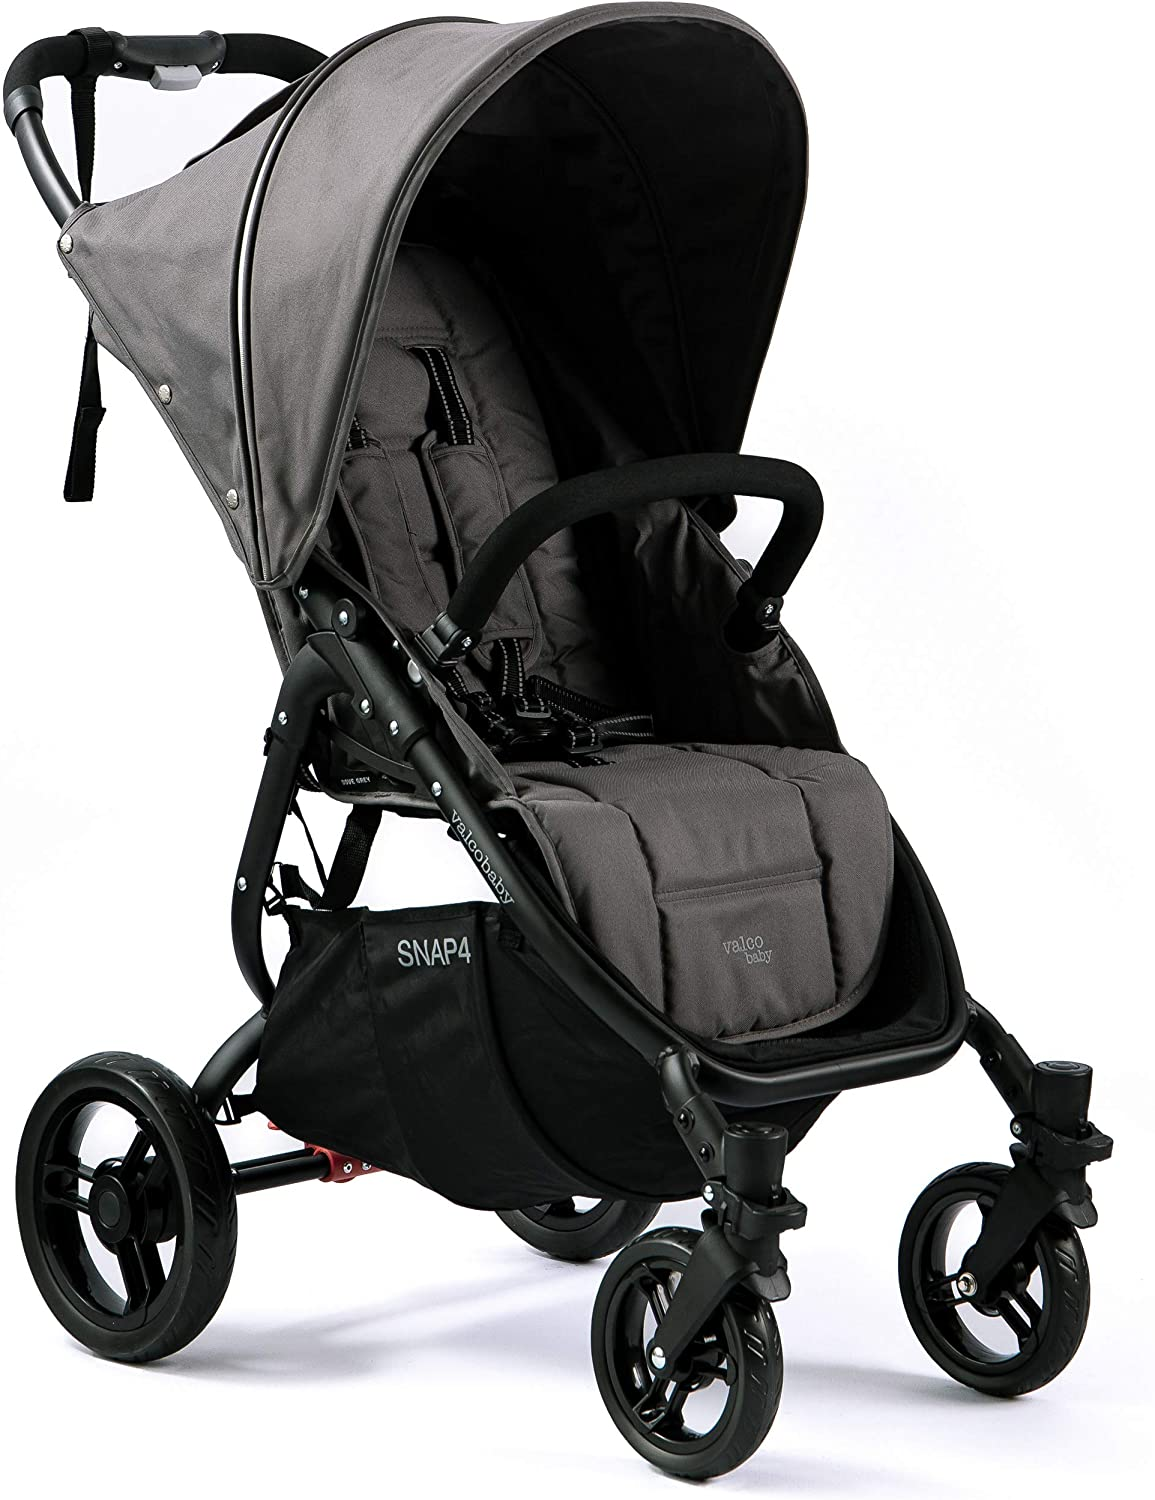 Passeggino - Valco - Valco Baby Snap4 Single Stroller Snap